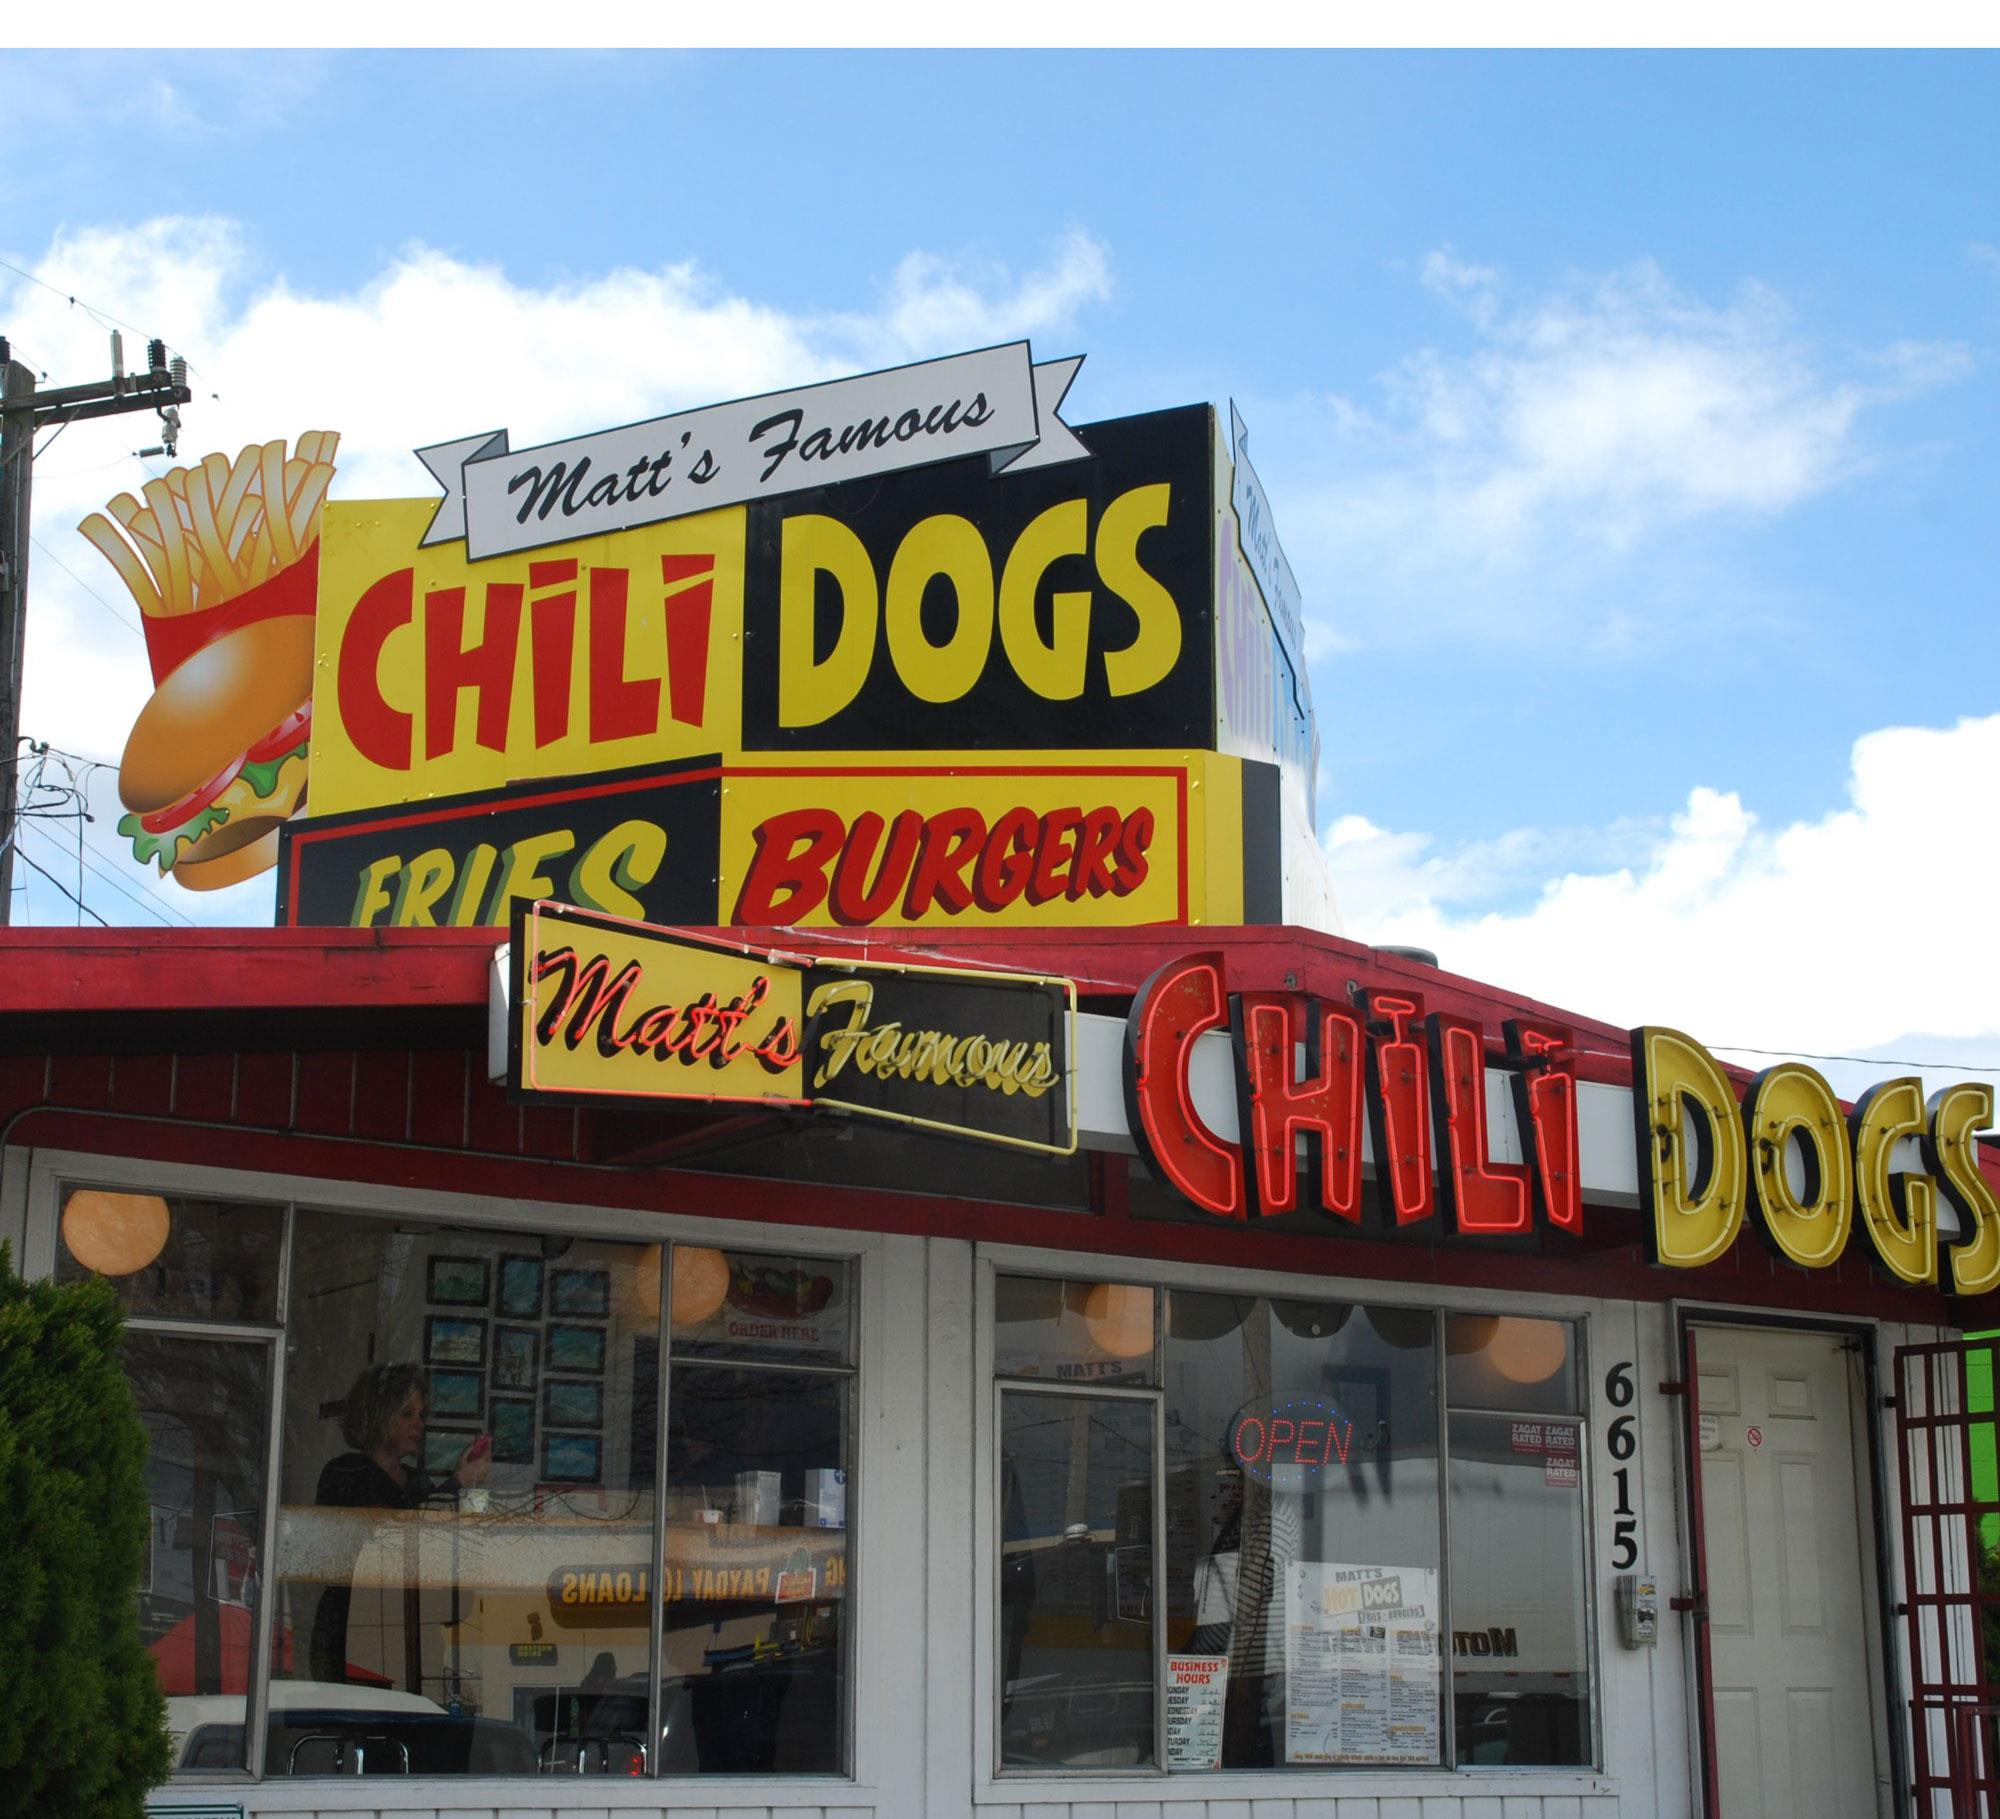 This place just gets us. In the mix here, you'll find the namesake concoction that started it all - Matt's Famous Chili Dog, a gourmet hot dog with all the fixings plus a generous ladle of chili. (Image: Matt's Famous Chili Dogs Facebook Page)